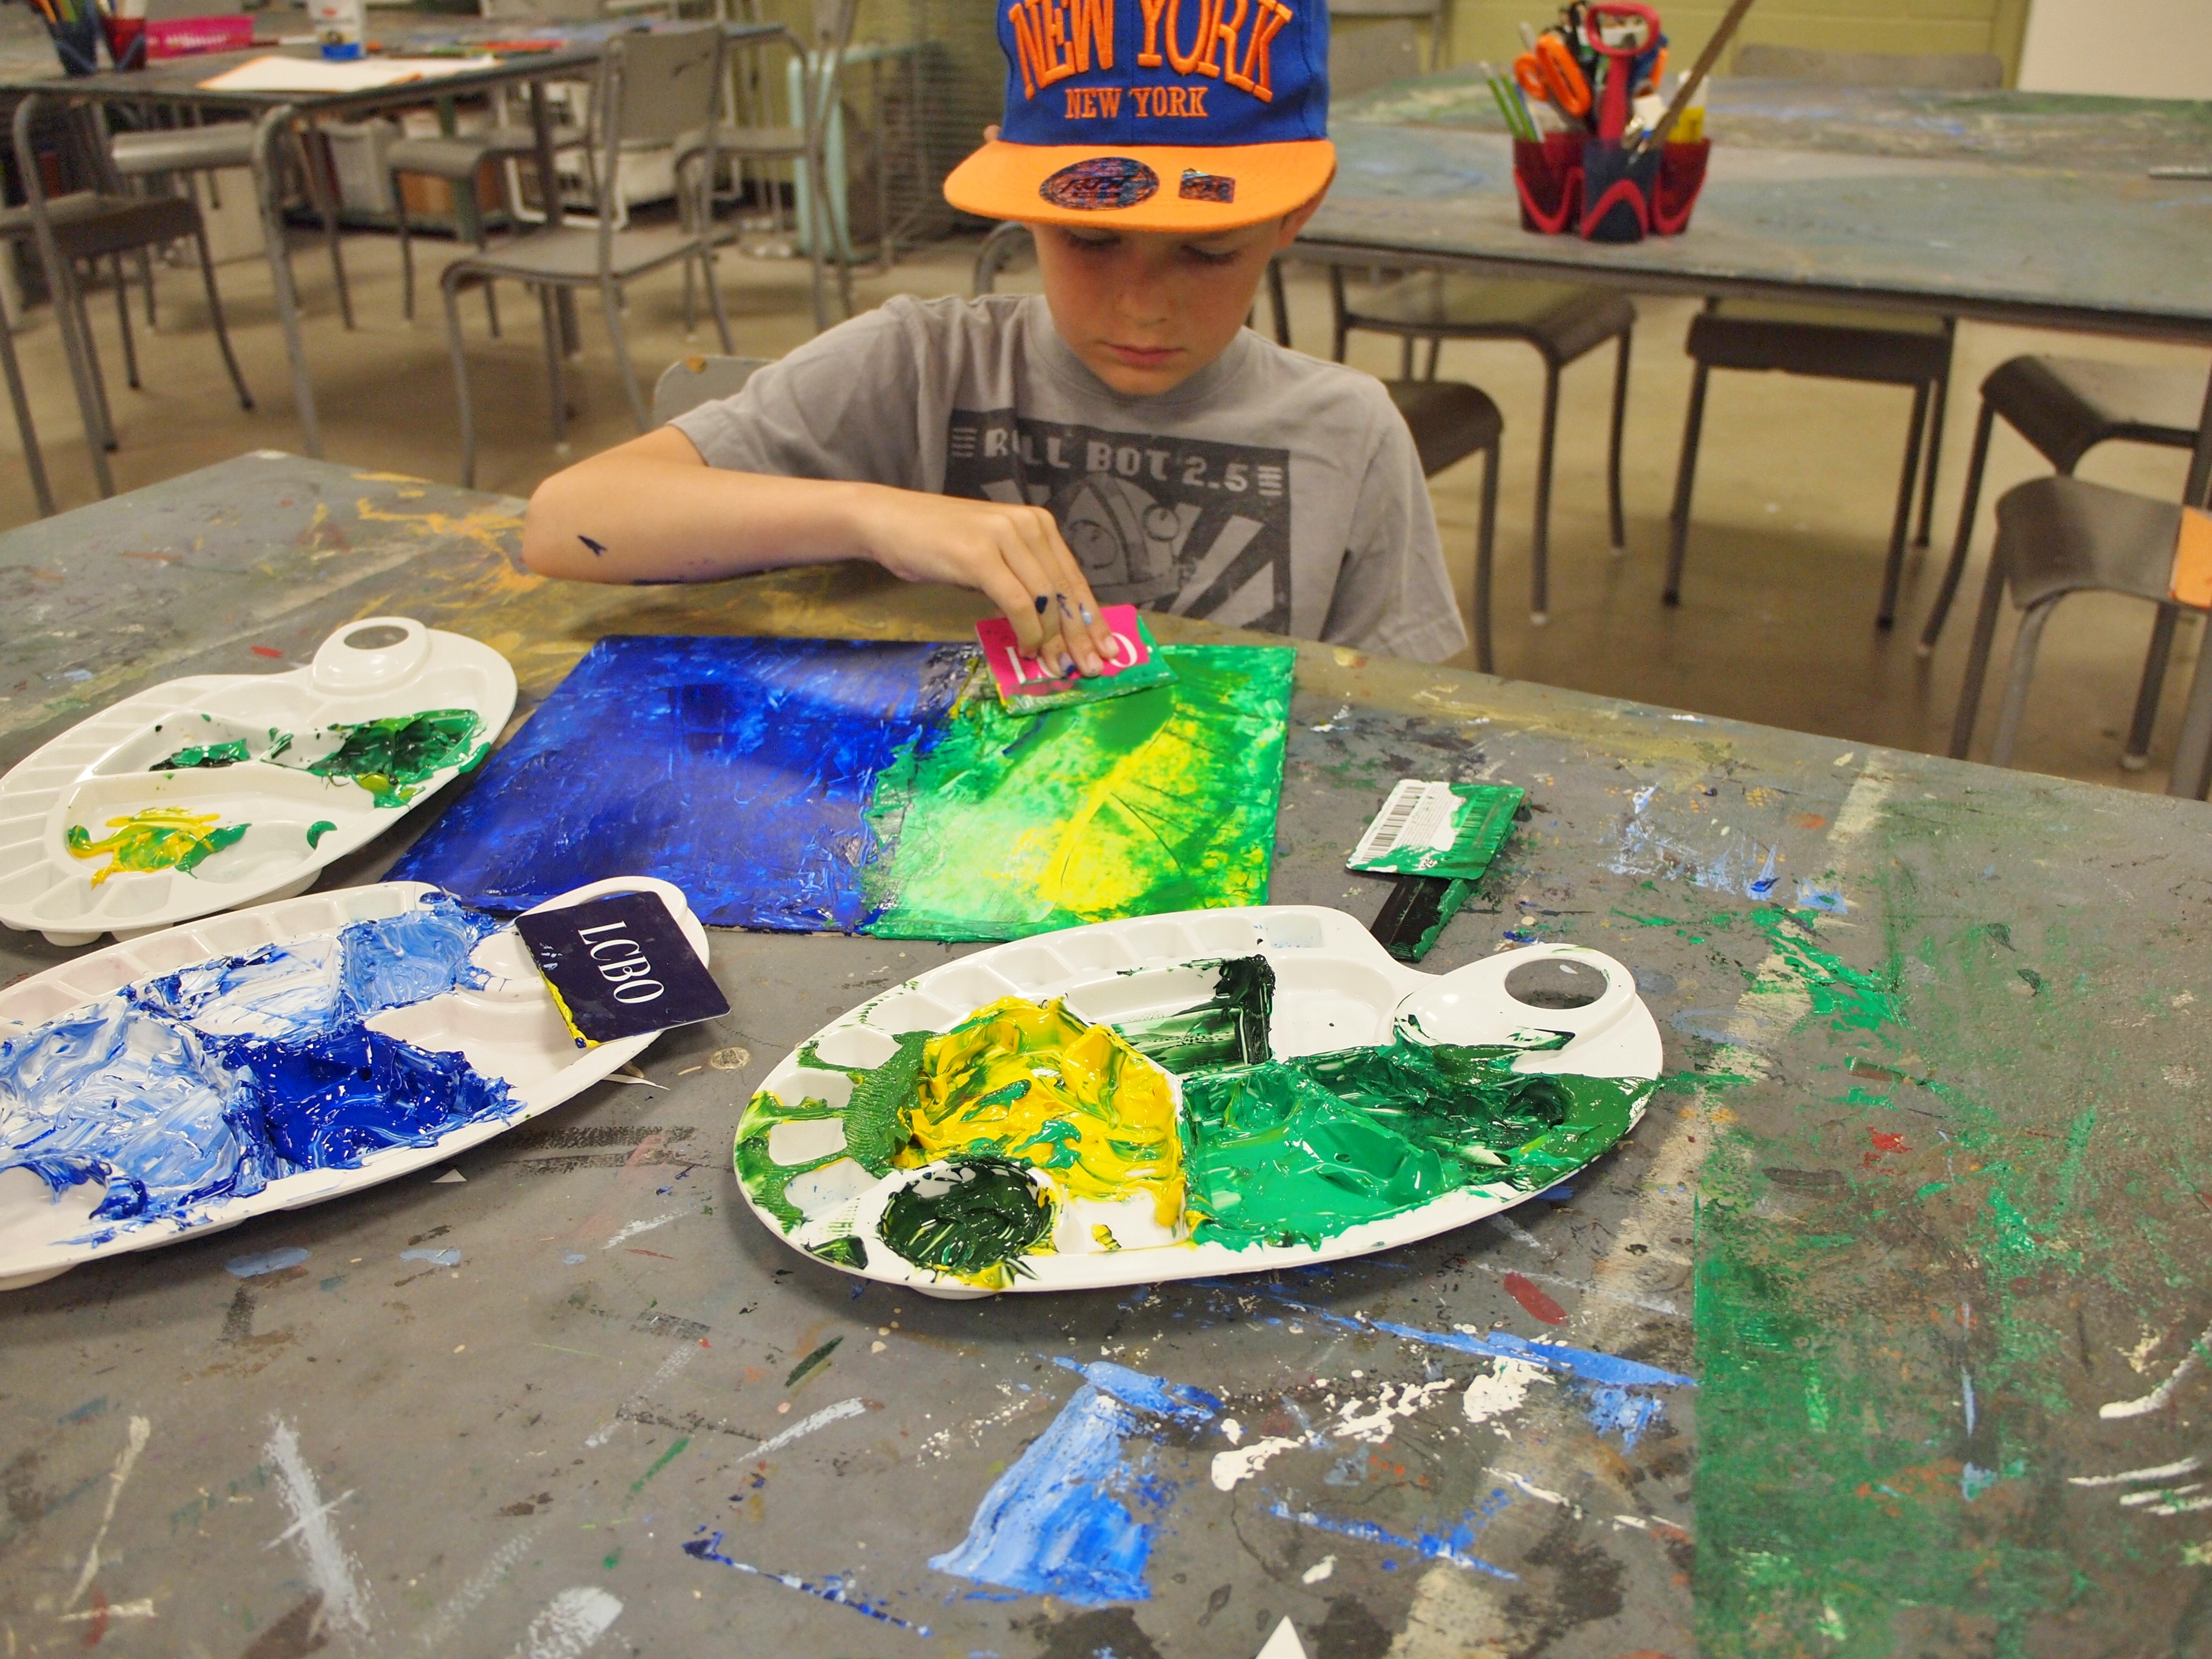 Photo of a young boy in grey shirt and baseball hat using a plastic card to scrape layers of bright colours on a simple landscape of grass and sky, with three messy paint palettes spread out on the table in front of him